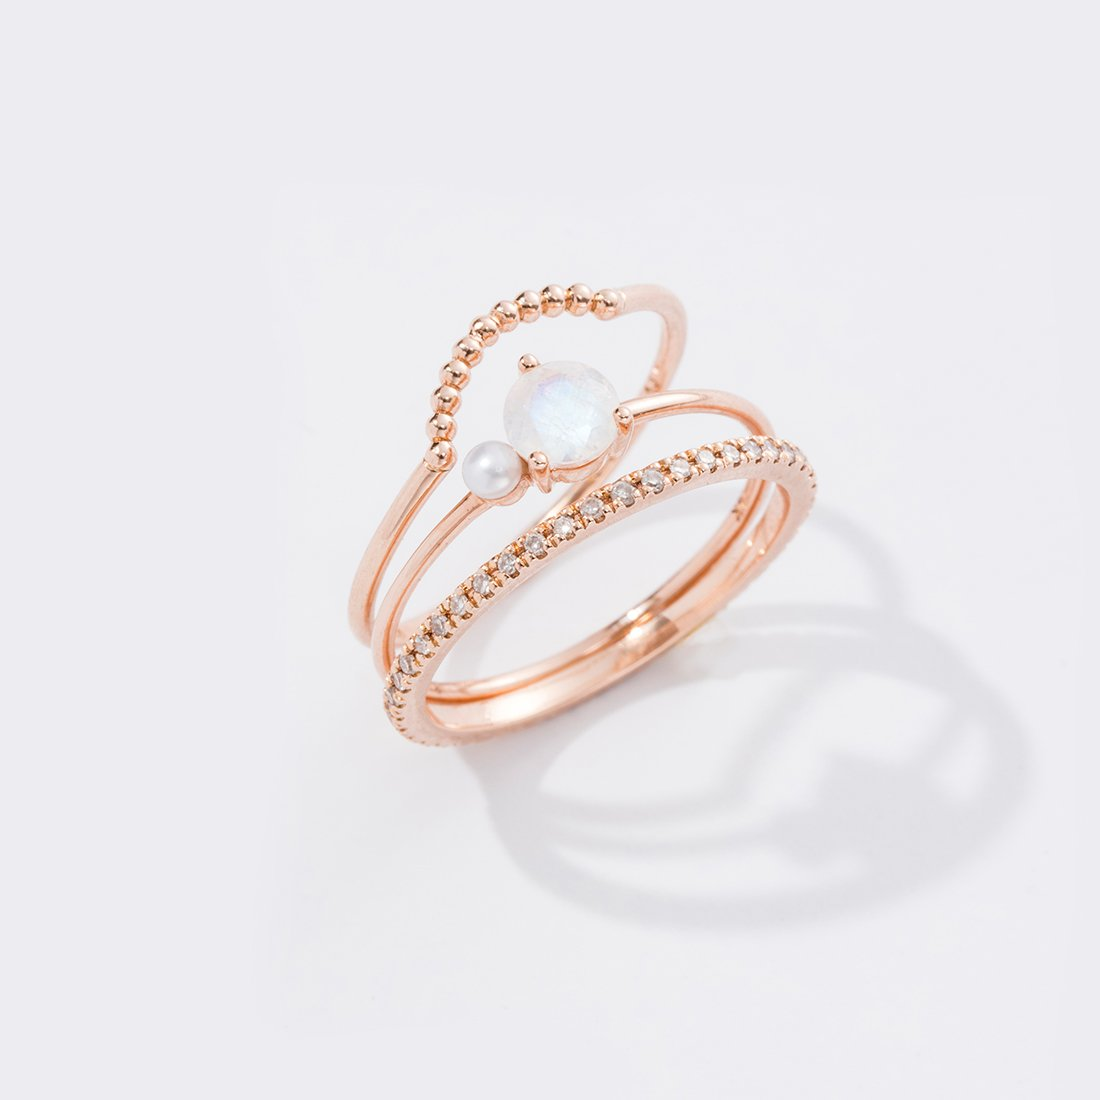 ARC RING (14K GOLD) Image 04